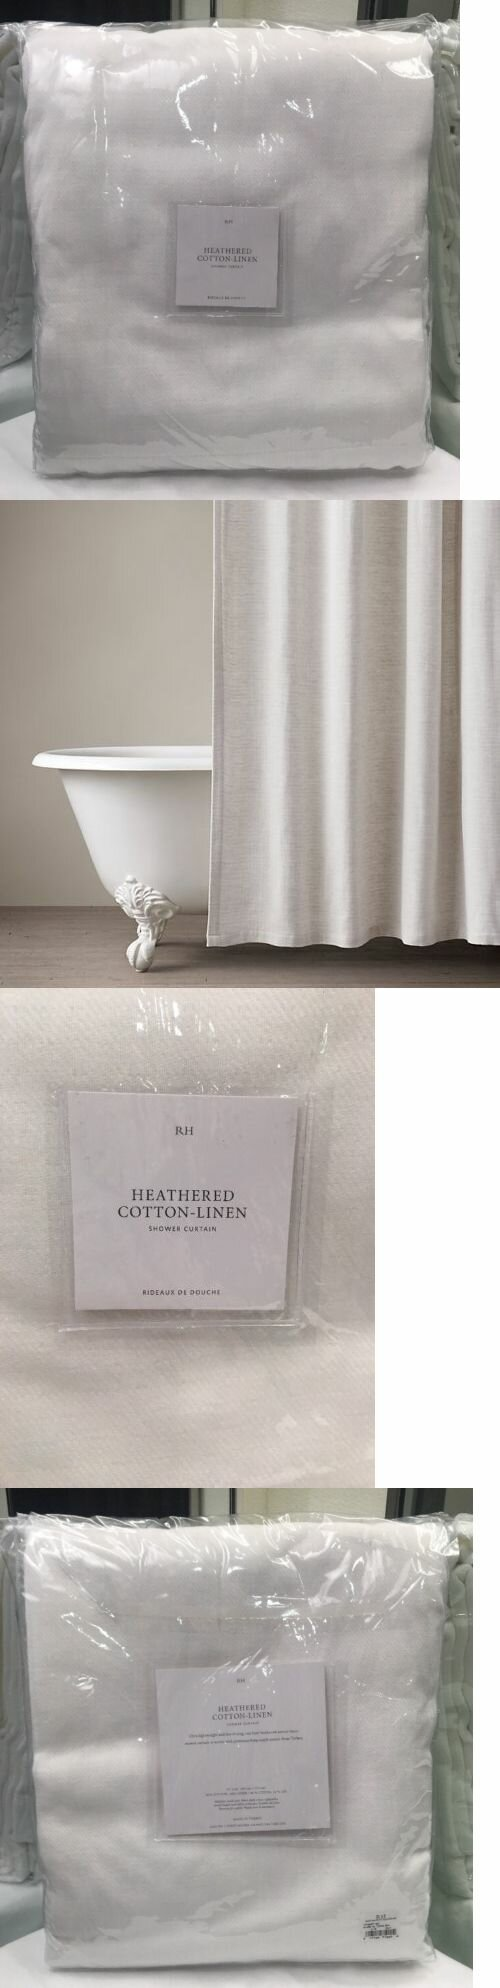 Restoration Hardware Curtains | Chrome Shower Rod | Restoration Hardware Shower Curtain